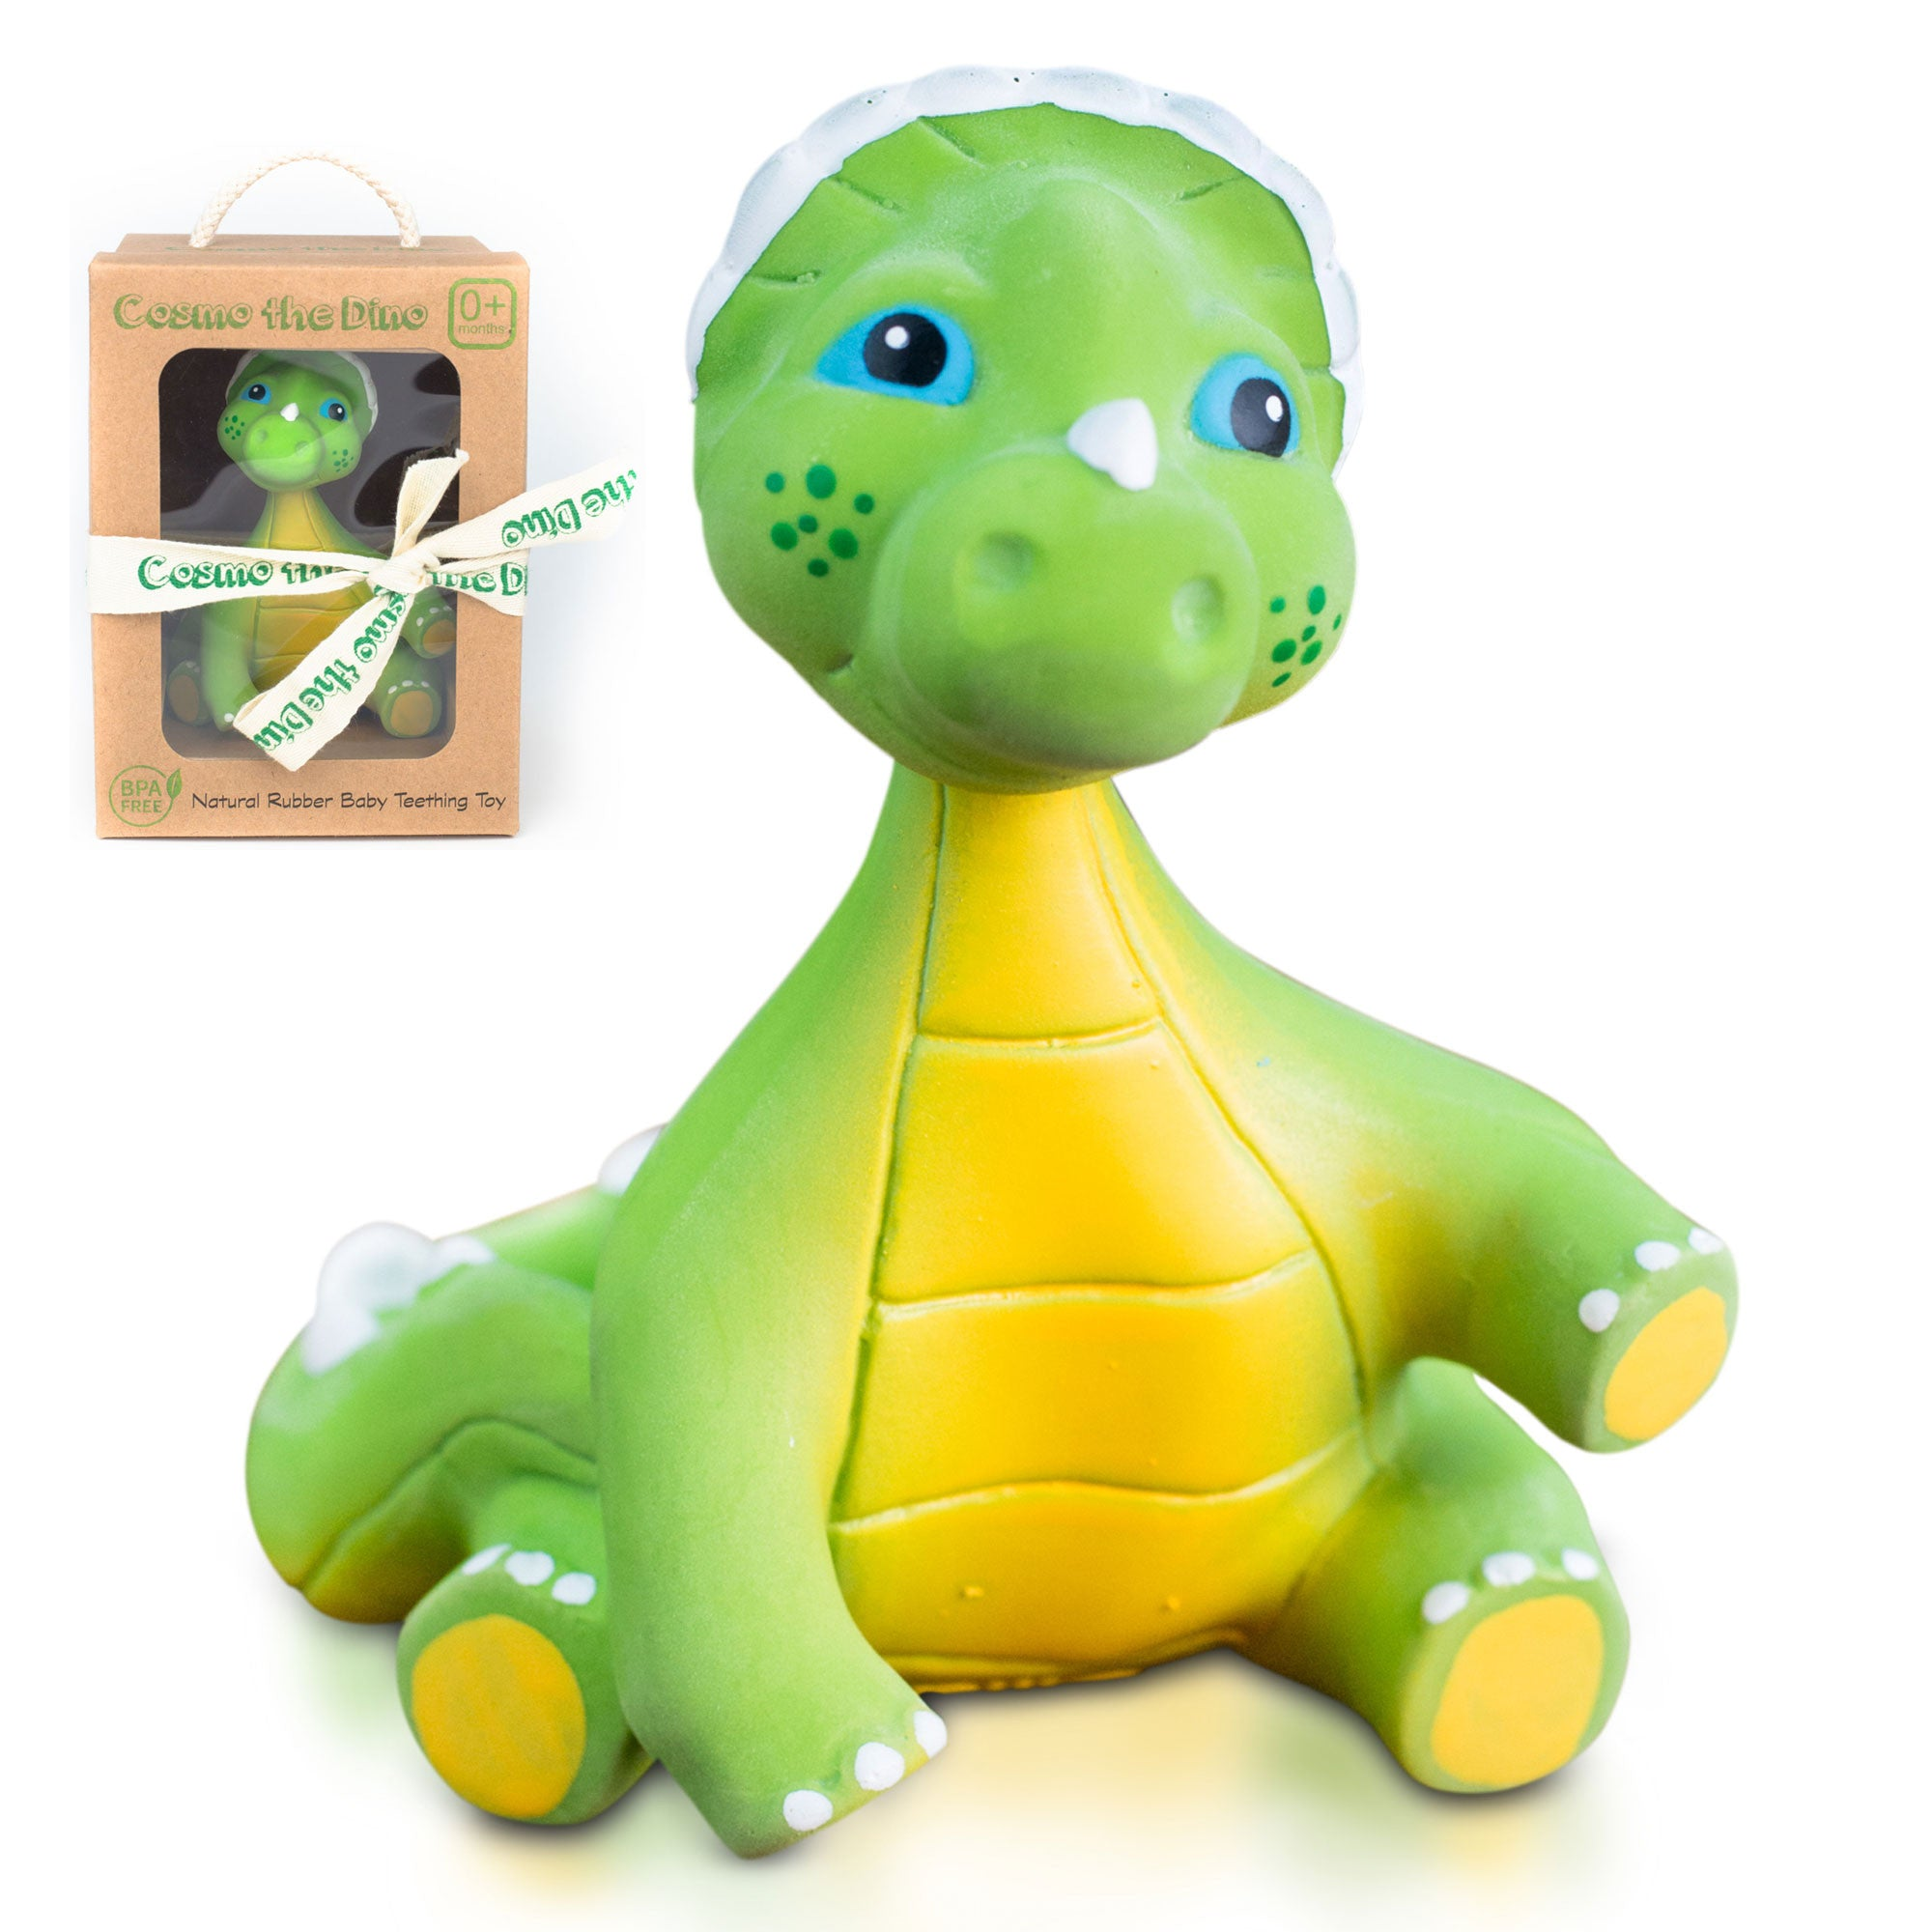 Cosmo the Dino Baby Natural Teether Toy by Pijio with Free Downloadabl